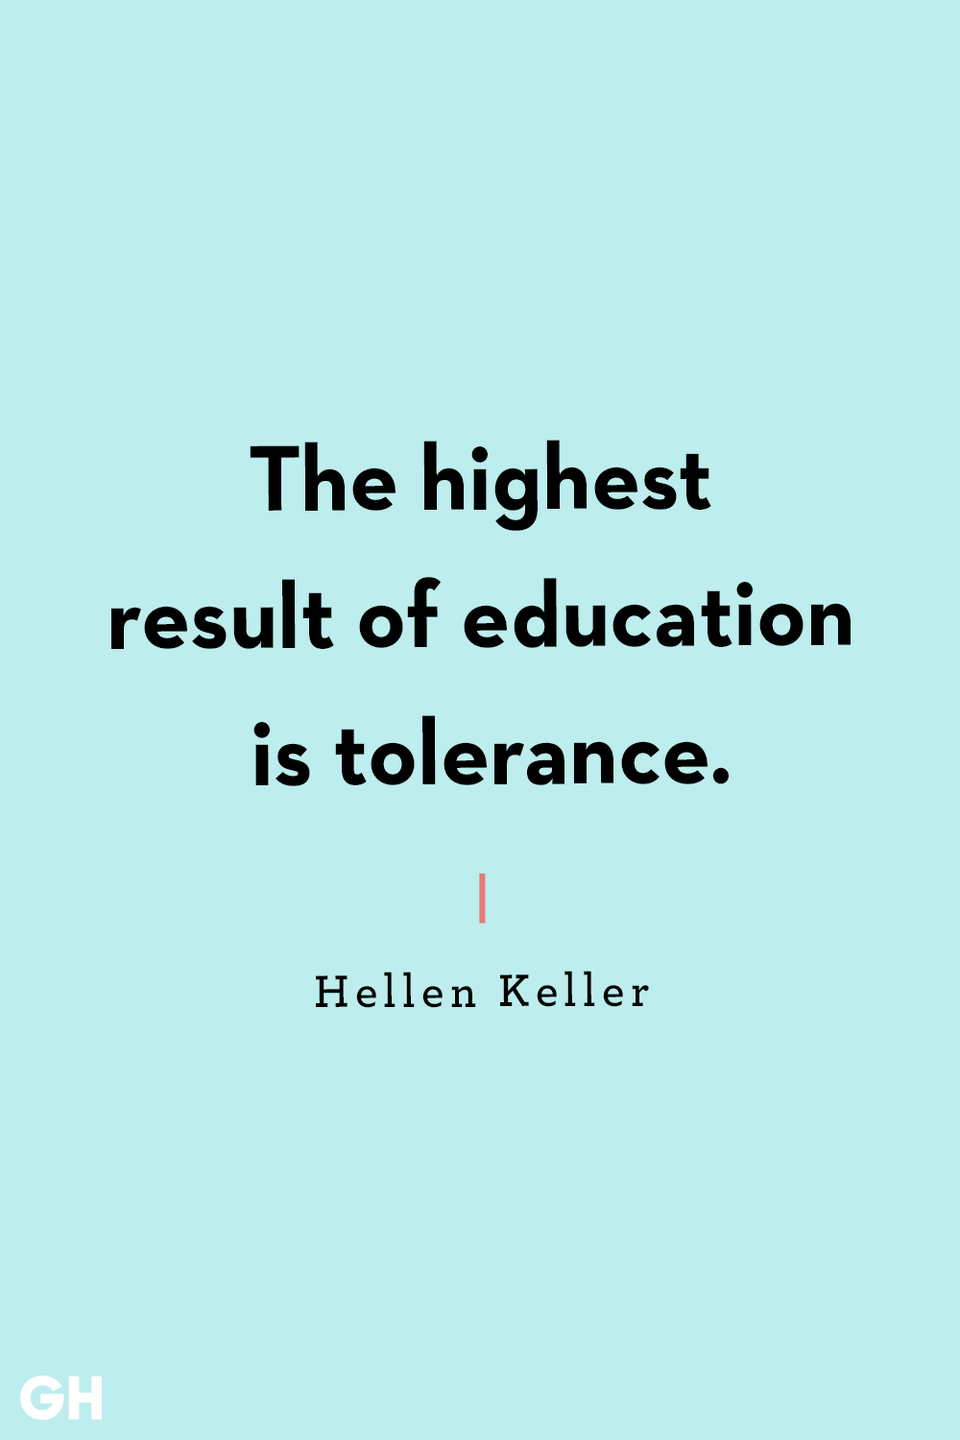 <p>The highest result of education is tolerance.</p>